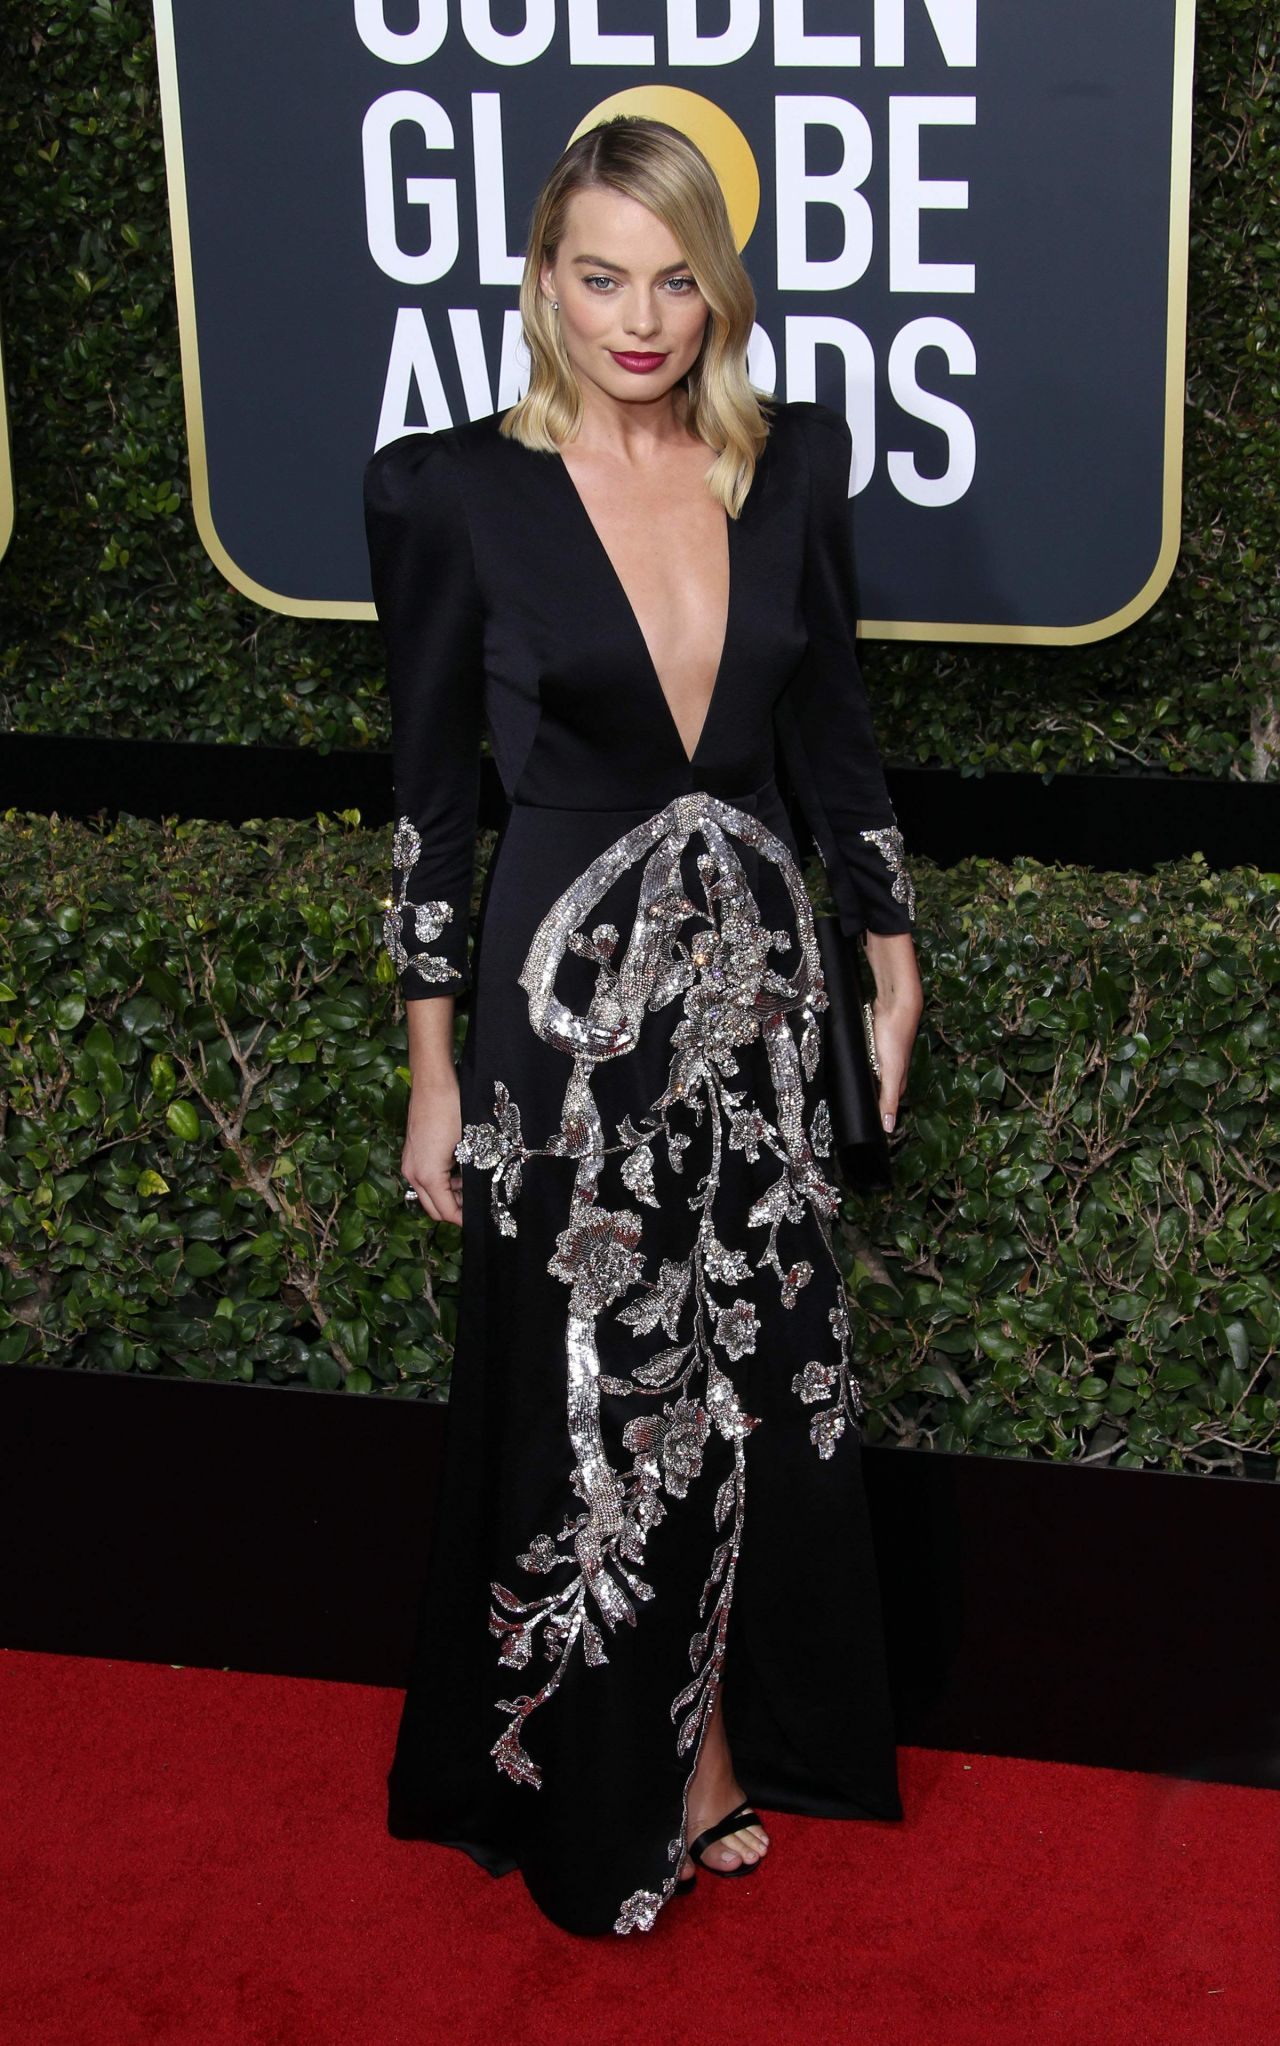 http://celebmafia.com/wp-content/uploads/2018/01/margot-robbie-golden-globe-awards-2018-16.jpg